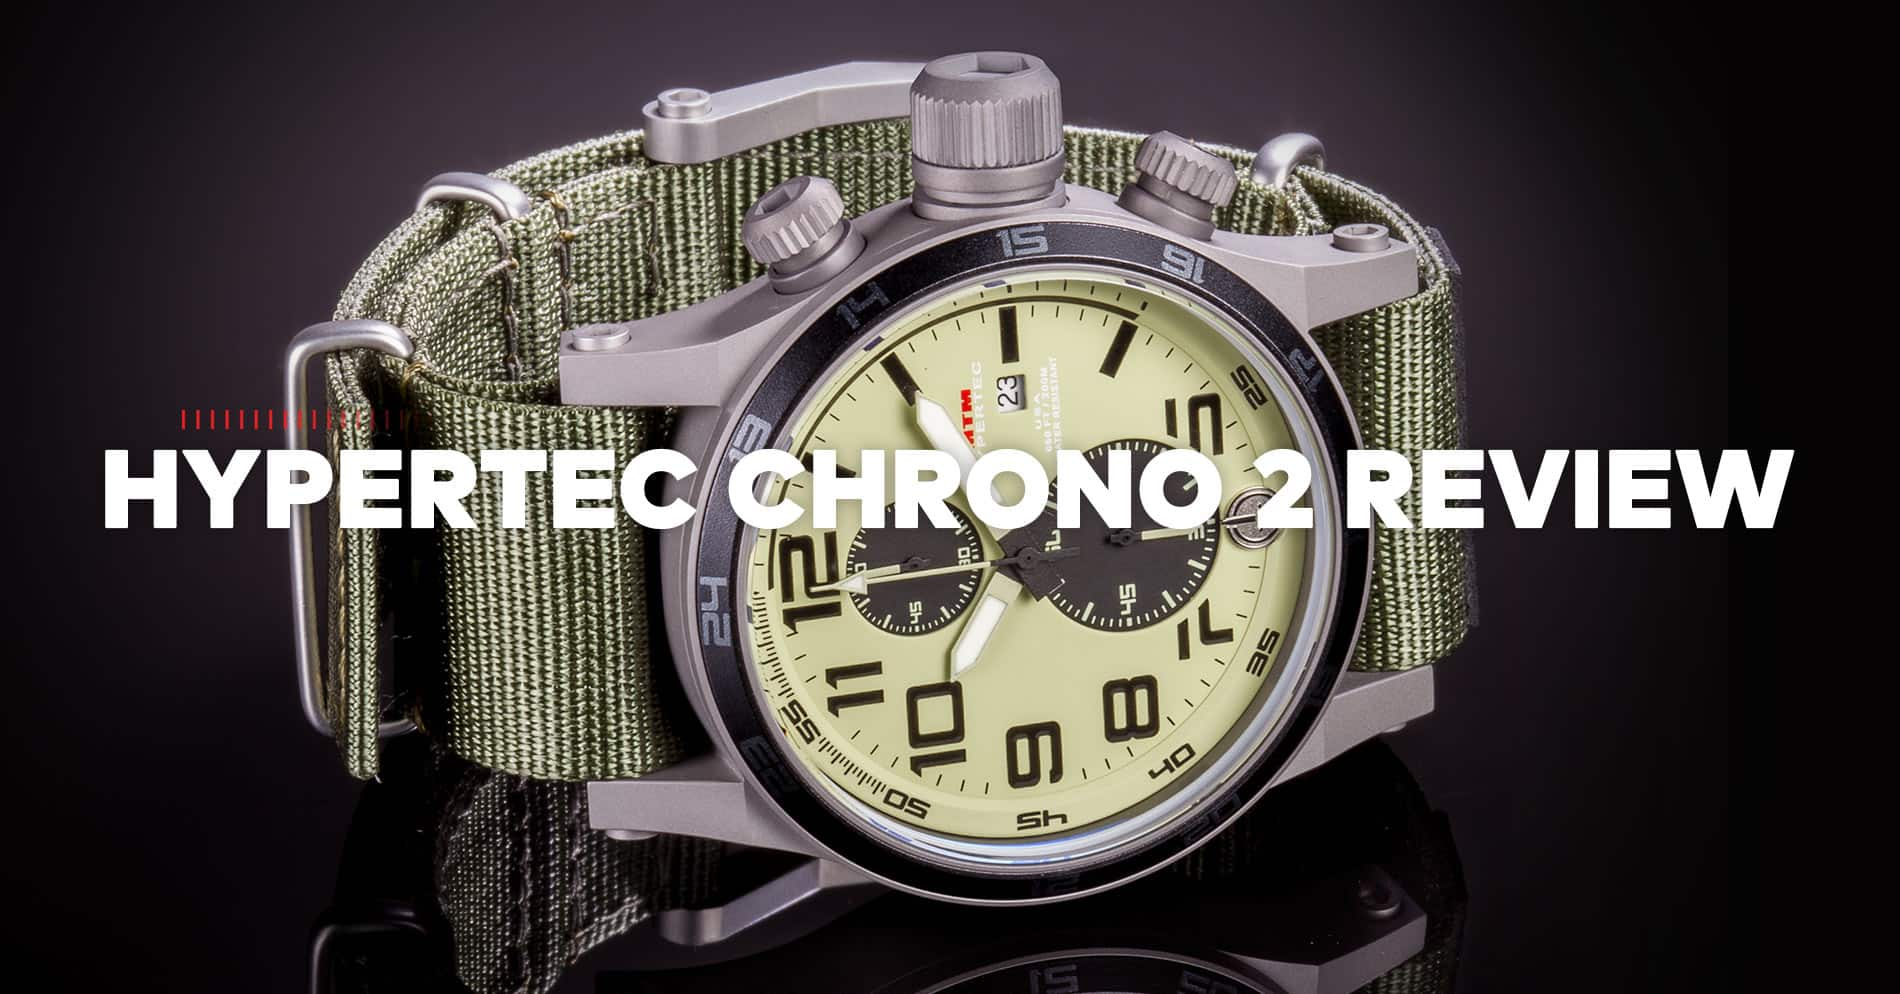 chronographs chronograph use vincero watches watch men to using how image for